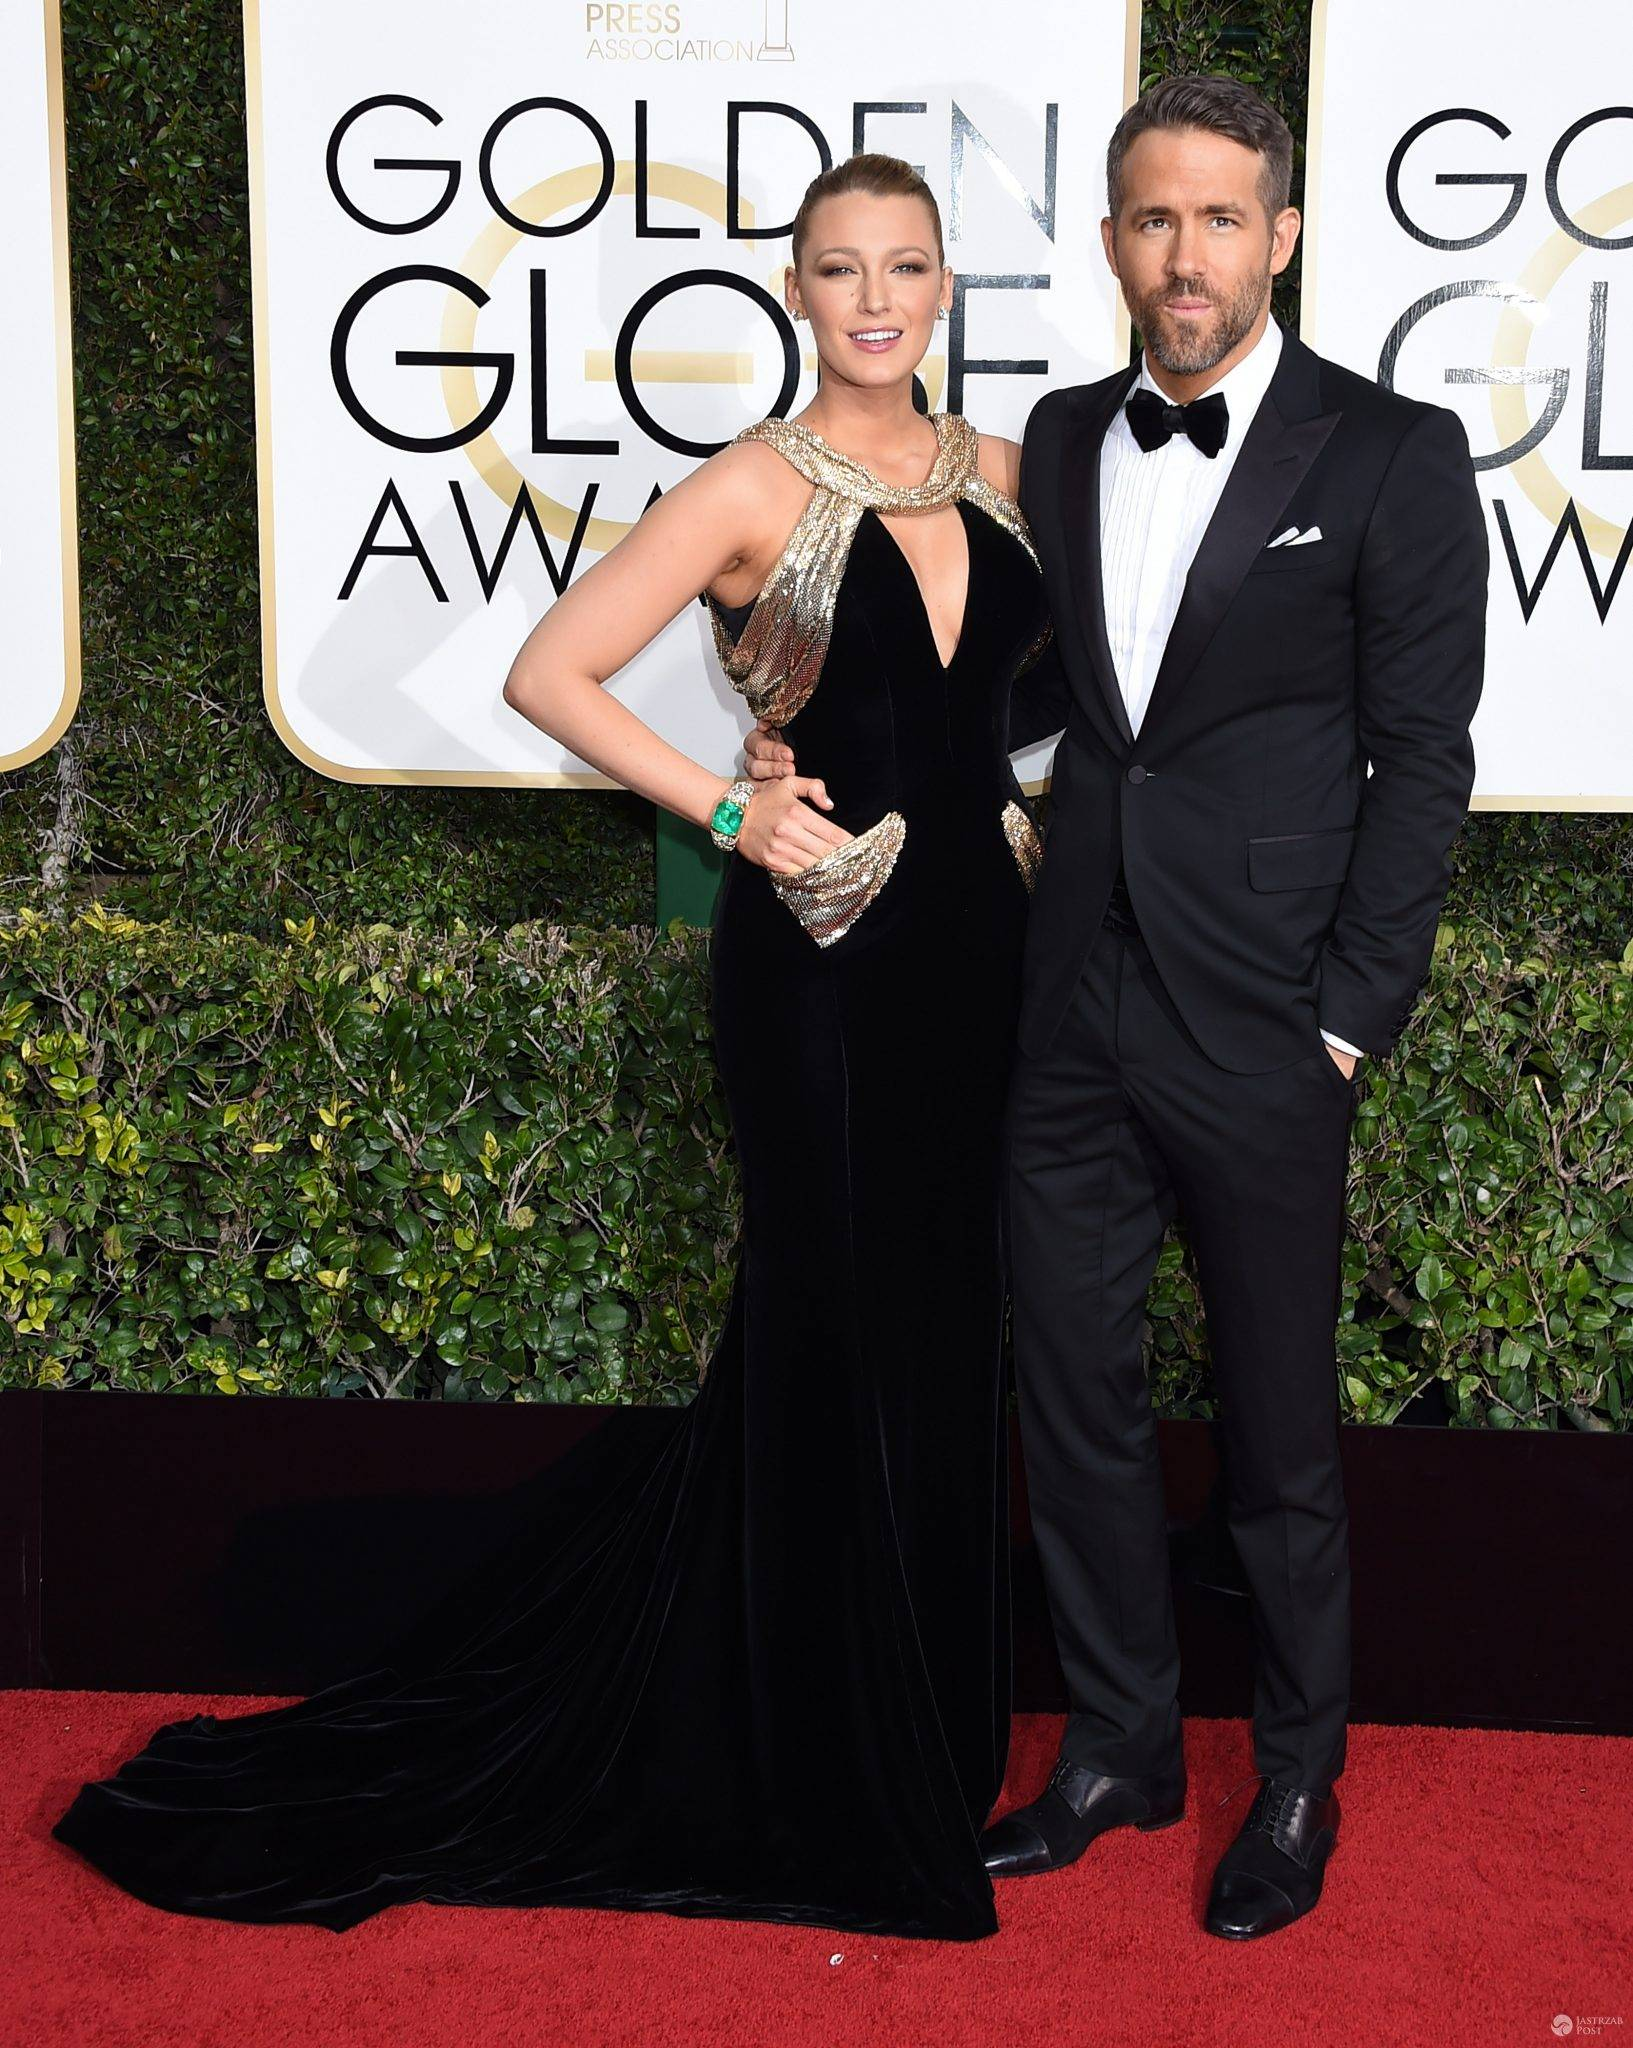 January 8, 2017 Beverly Hills, CA Blake Lively and Ryan Reynolds 74th Annual Golden Globe Awards held at the Beverly Hilton Hotel ©Tammie Arroyo-GG17/AFF-USA.com